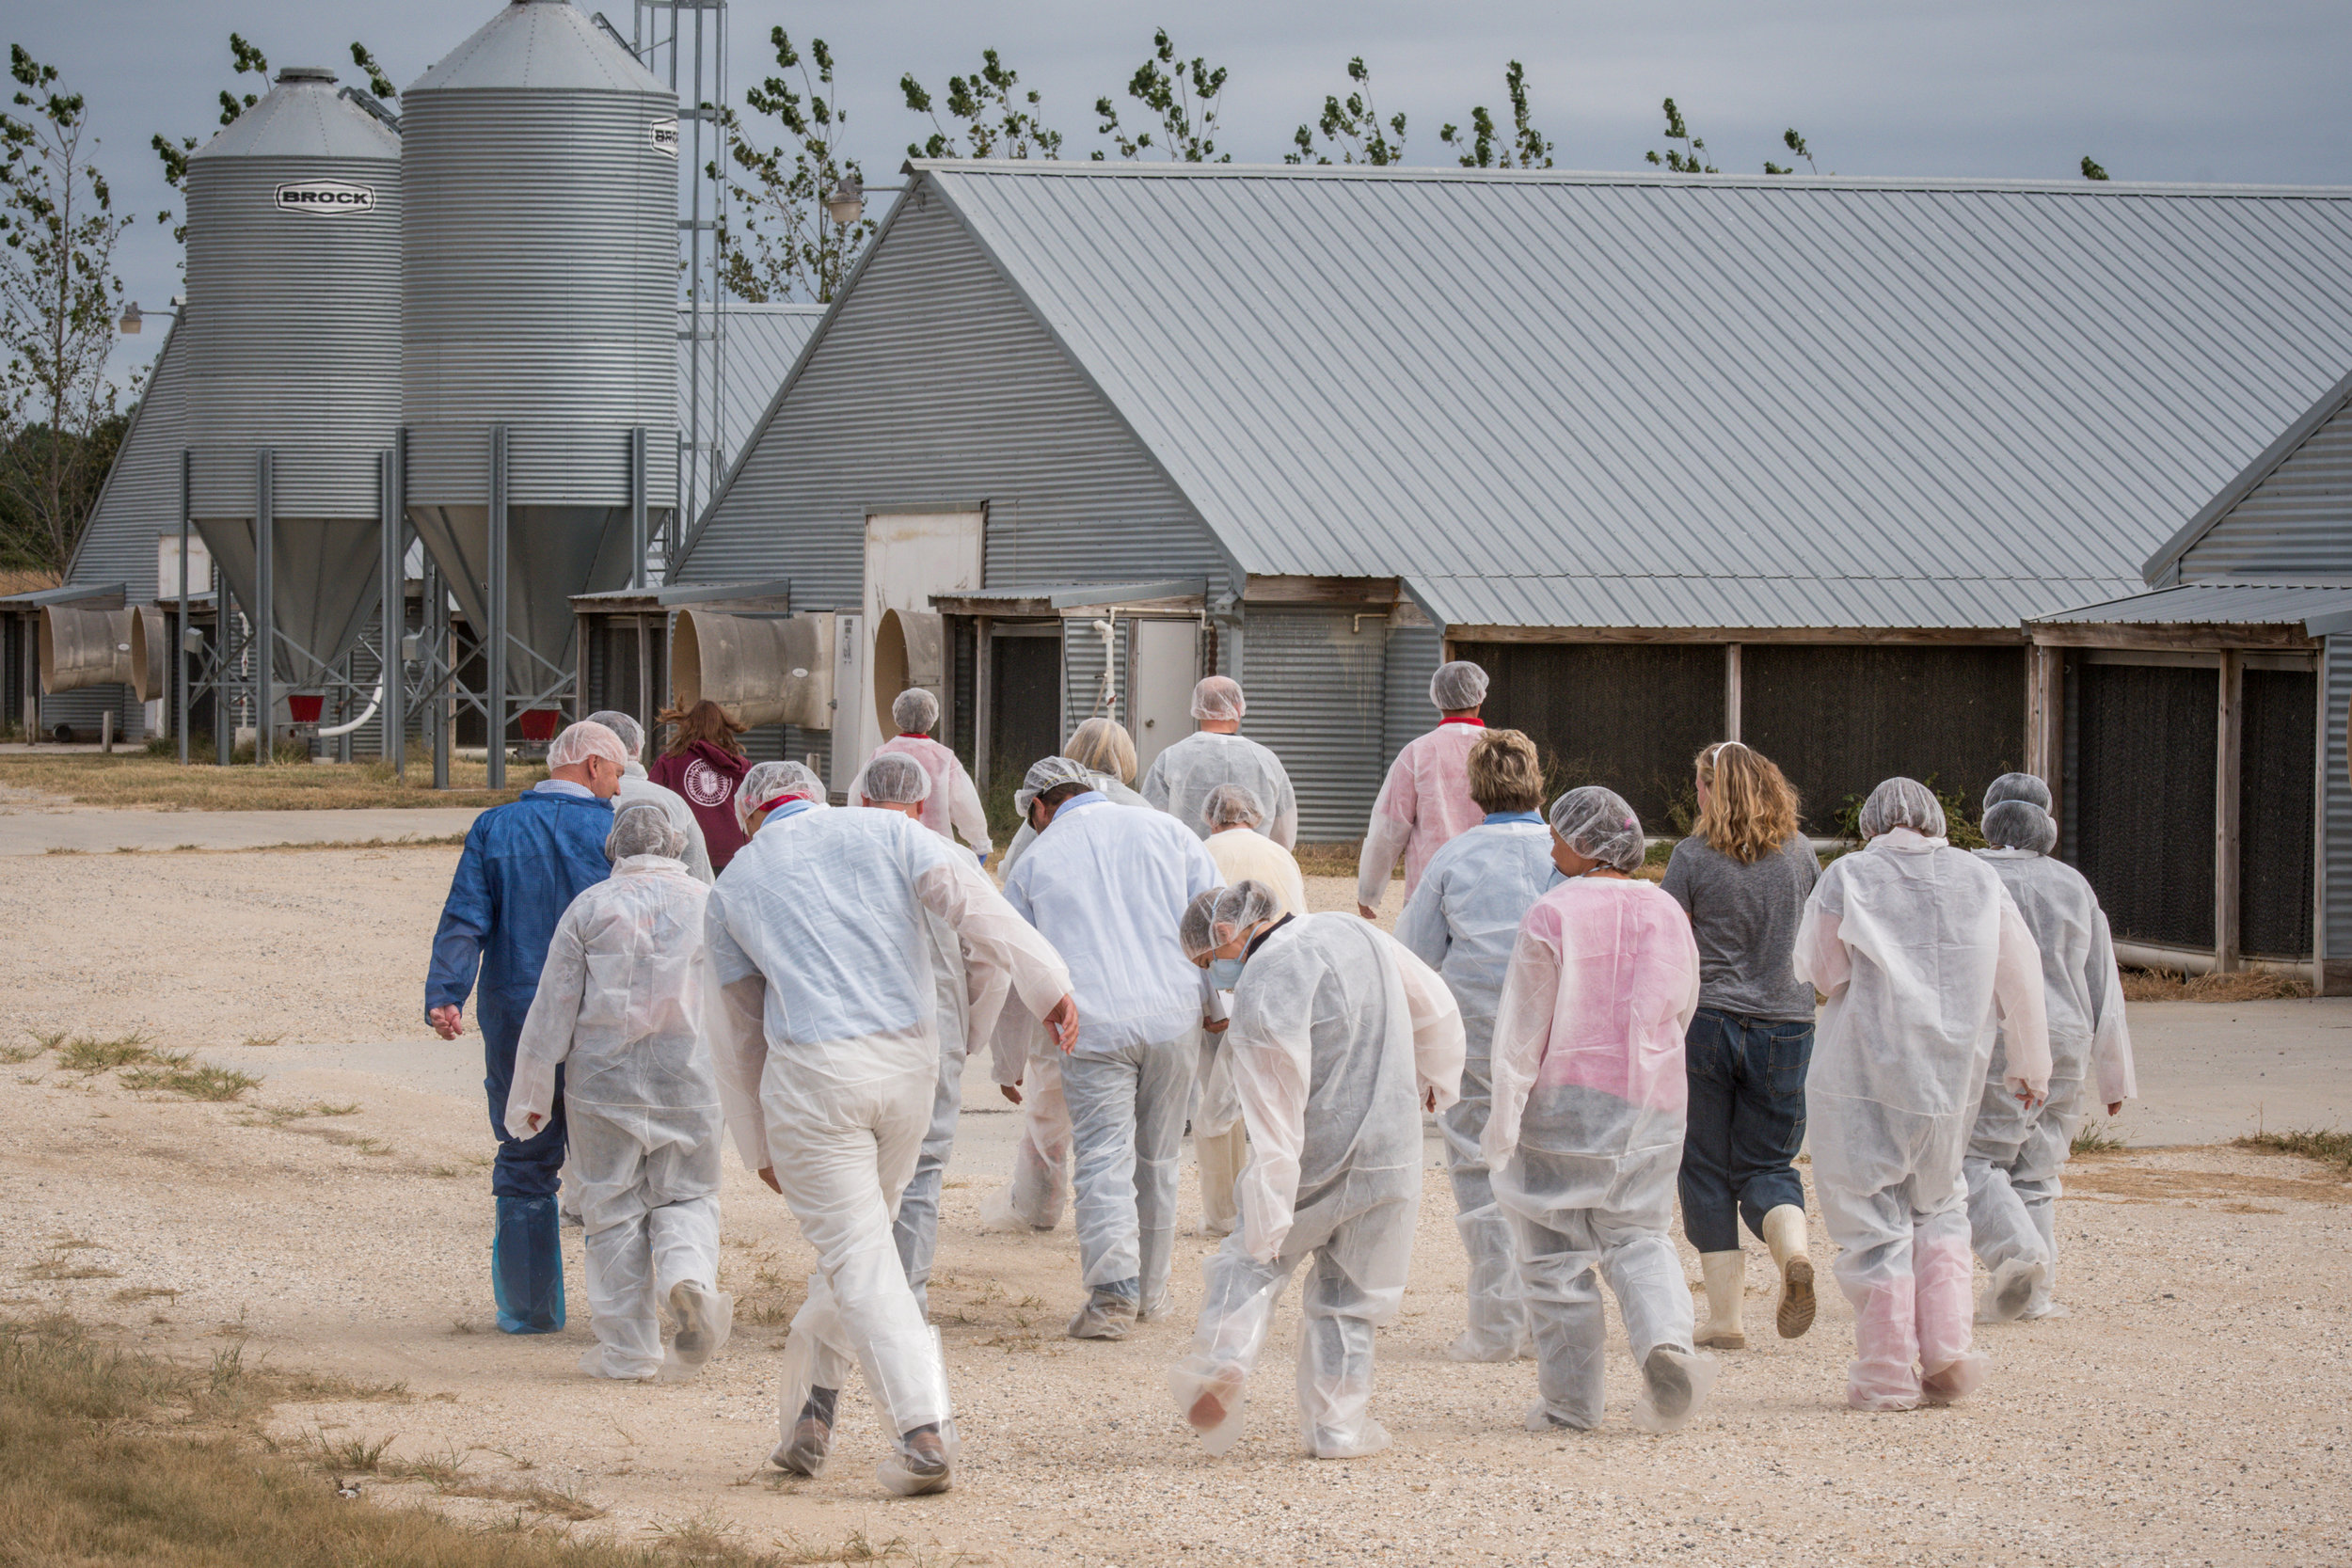 Image by Edwin Remsberg.  Image shows LEAD MD participants dressed to enter poultry houses in Maryland.